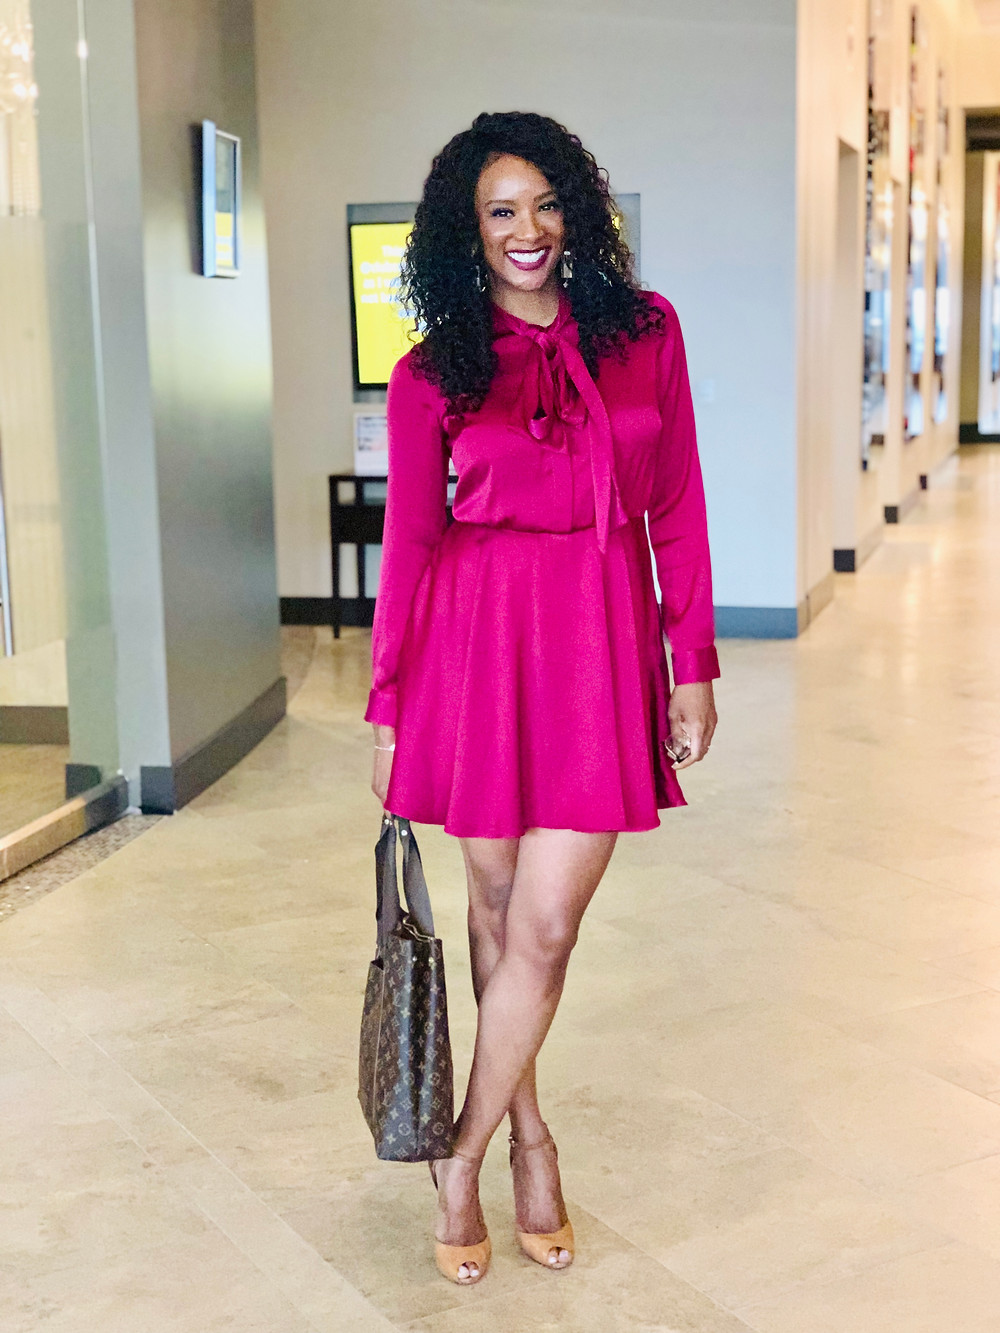 Serria Rego, financial advisor and founder of the Black Wealth Matters, An Educational Series. Part of TransAmerica World Financial Group.